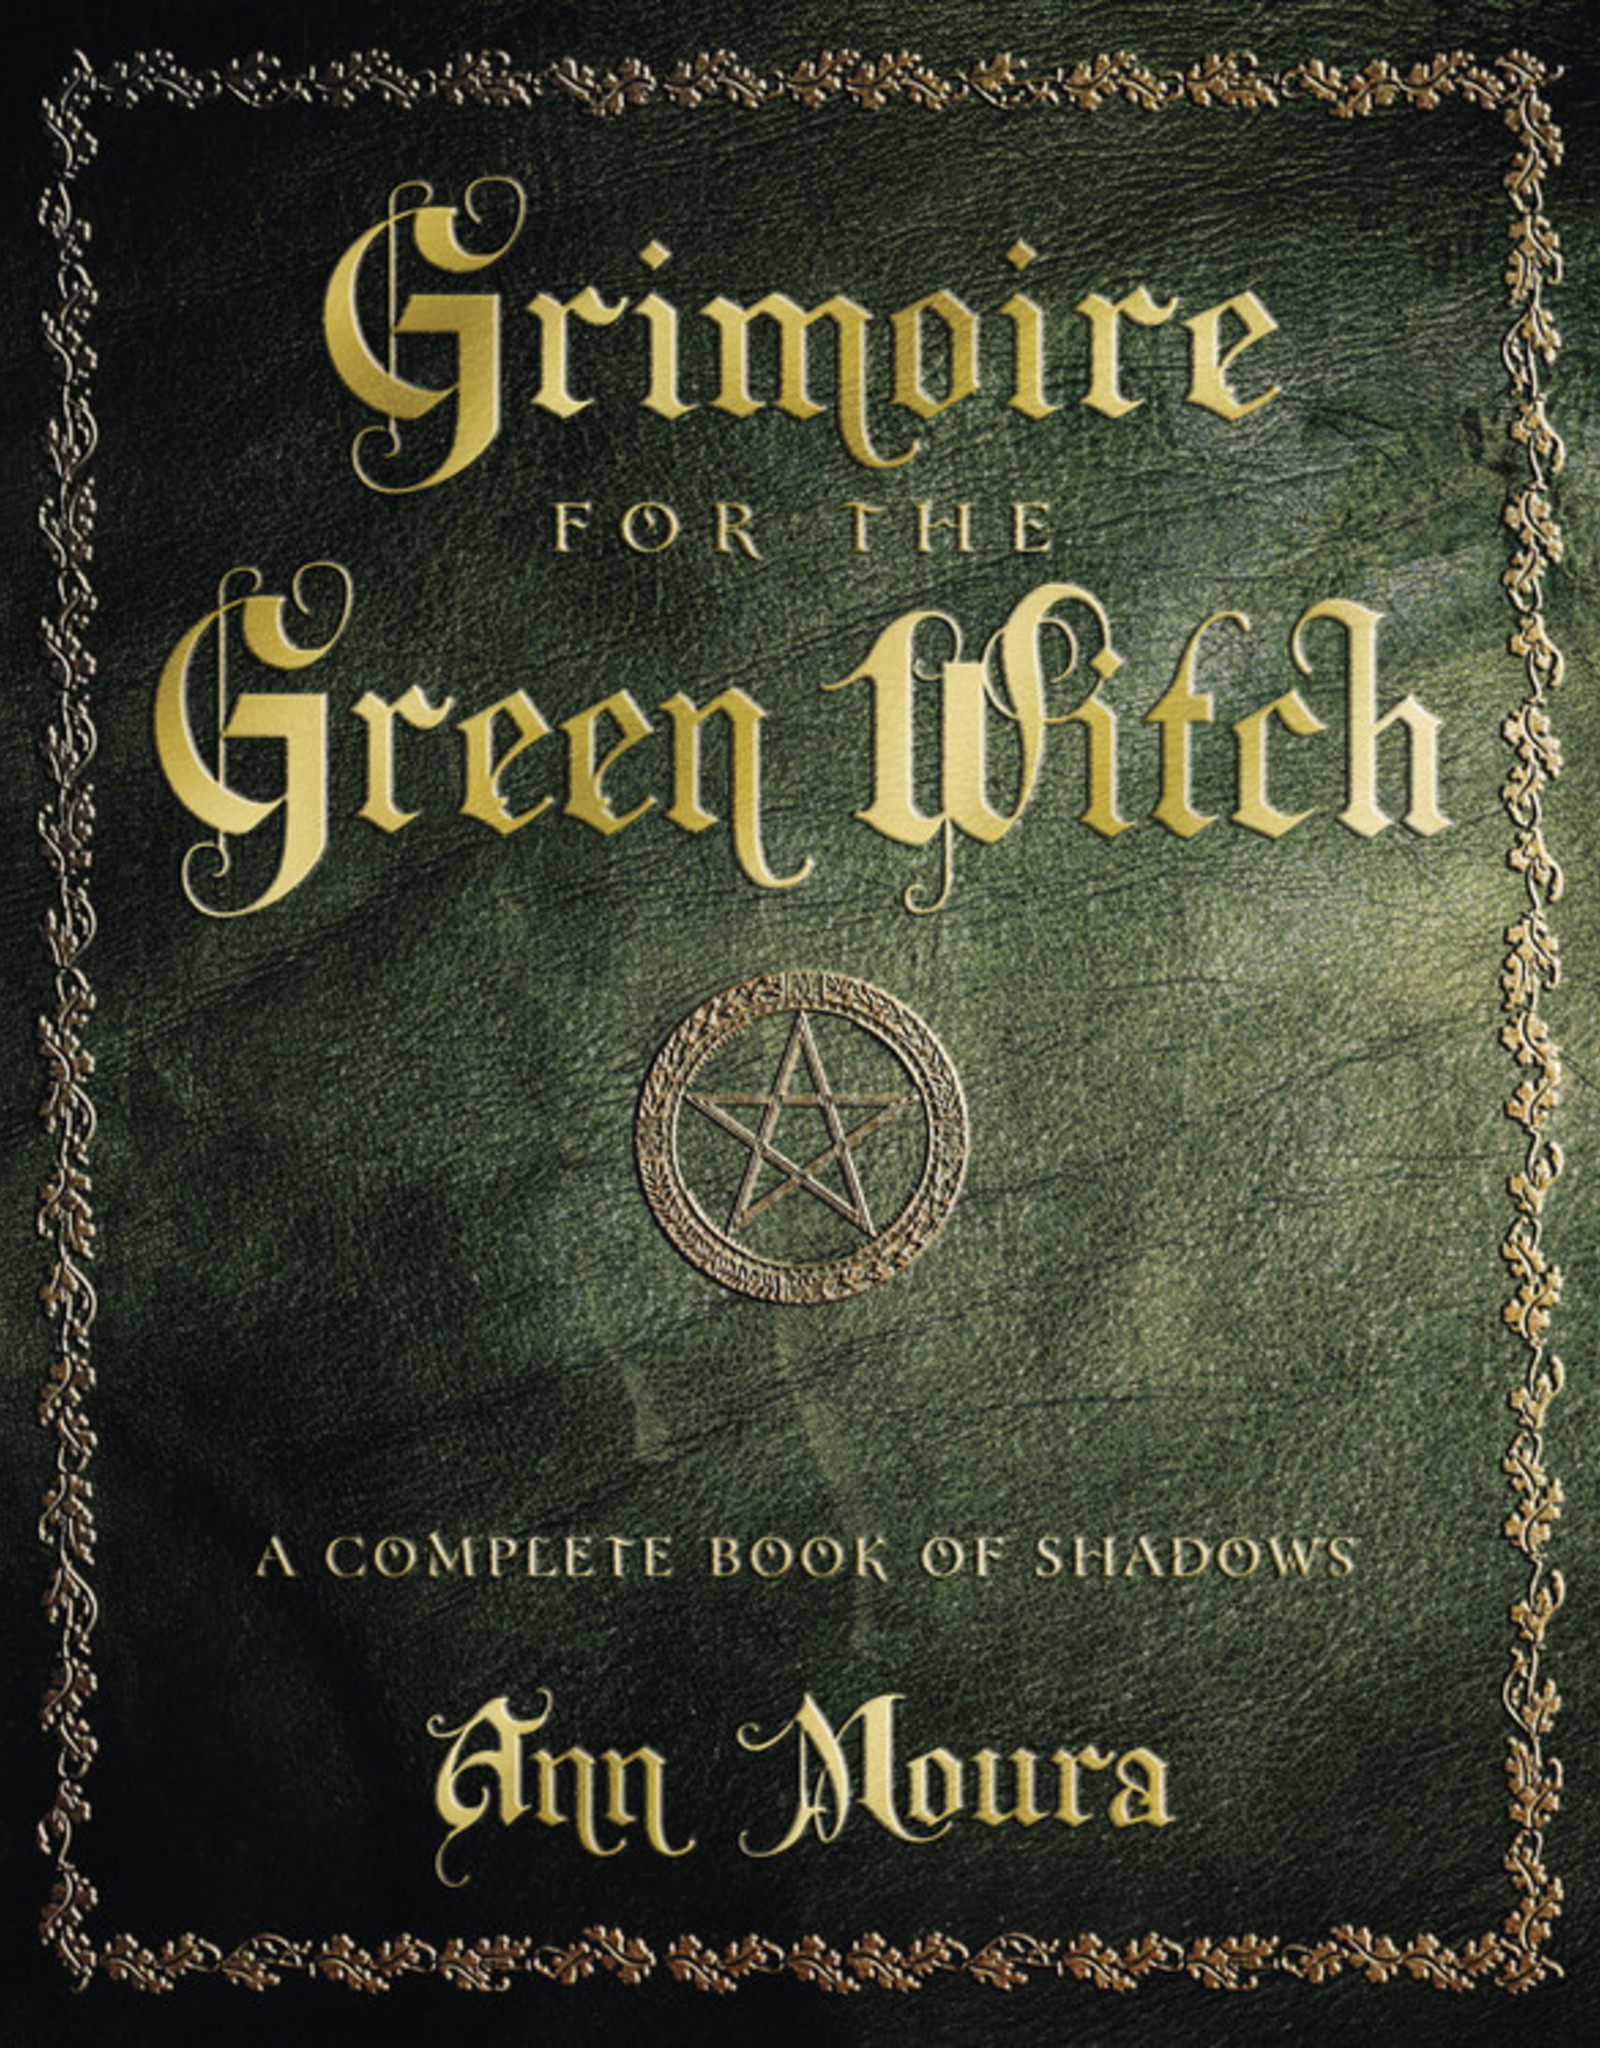 Llewelyn Grimoire for the Green Witch